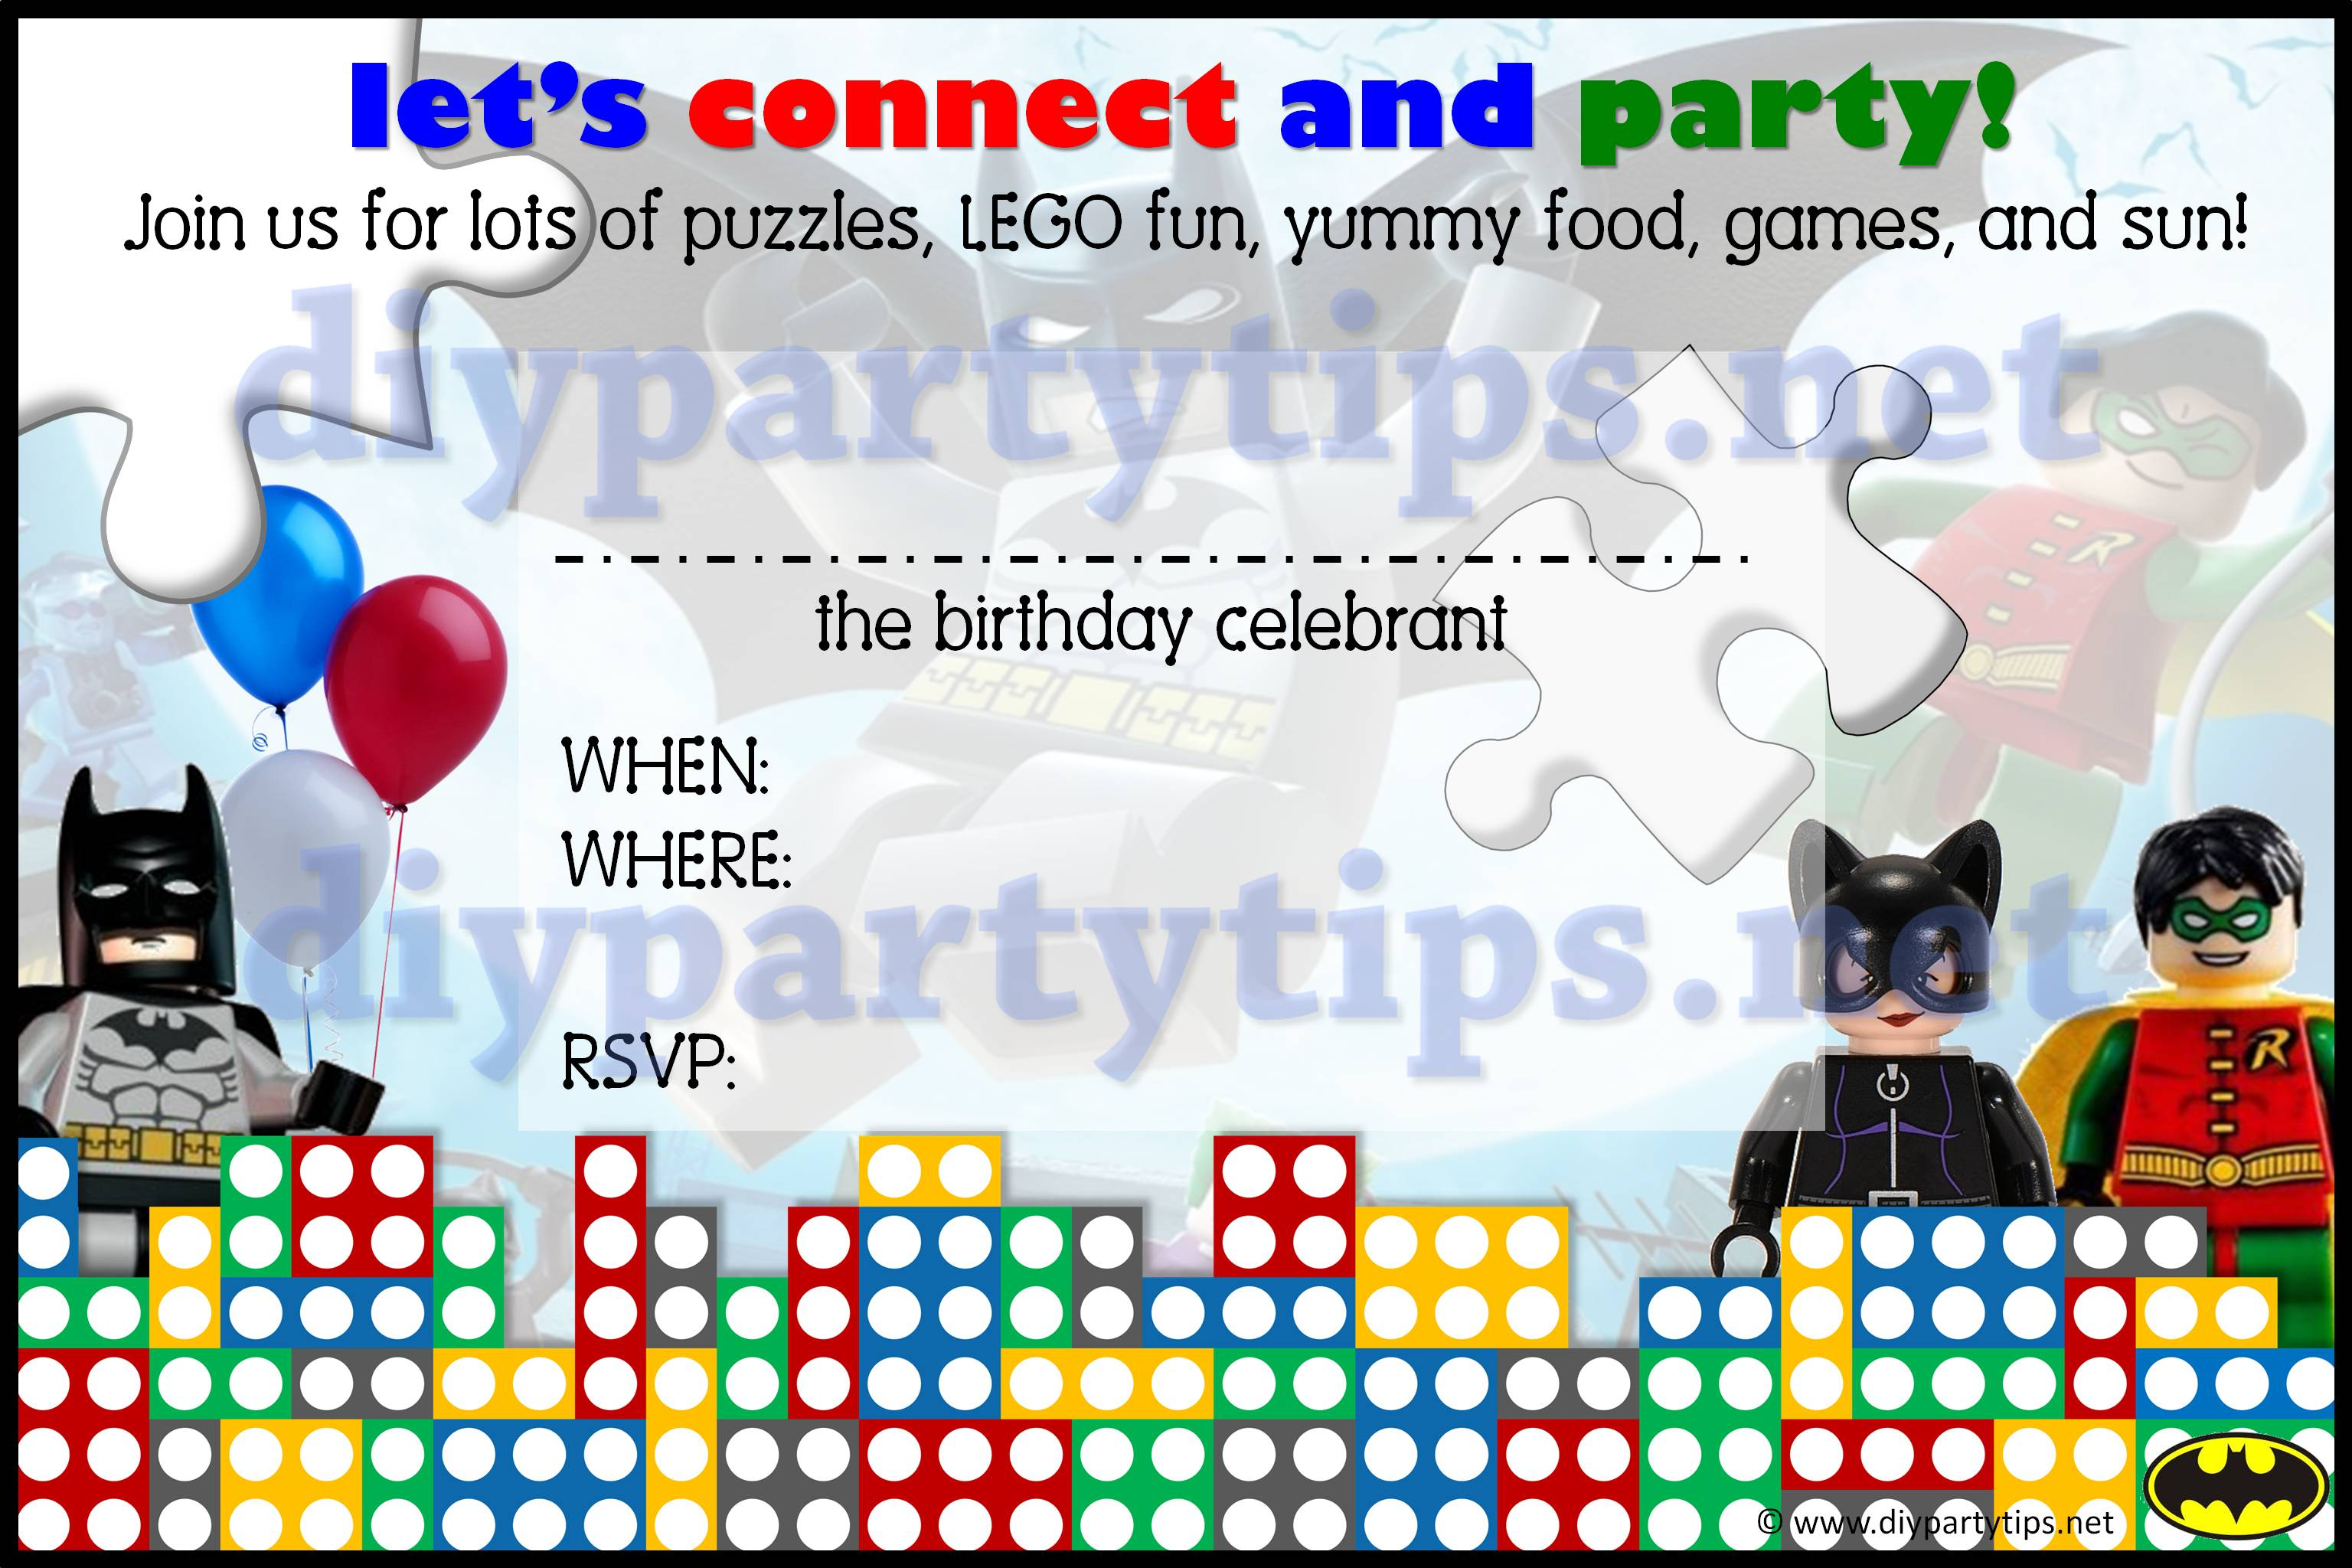 Superior Lego Birthday Invitation Template   Lolau0027s DIY Party Tips Watermark